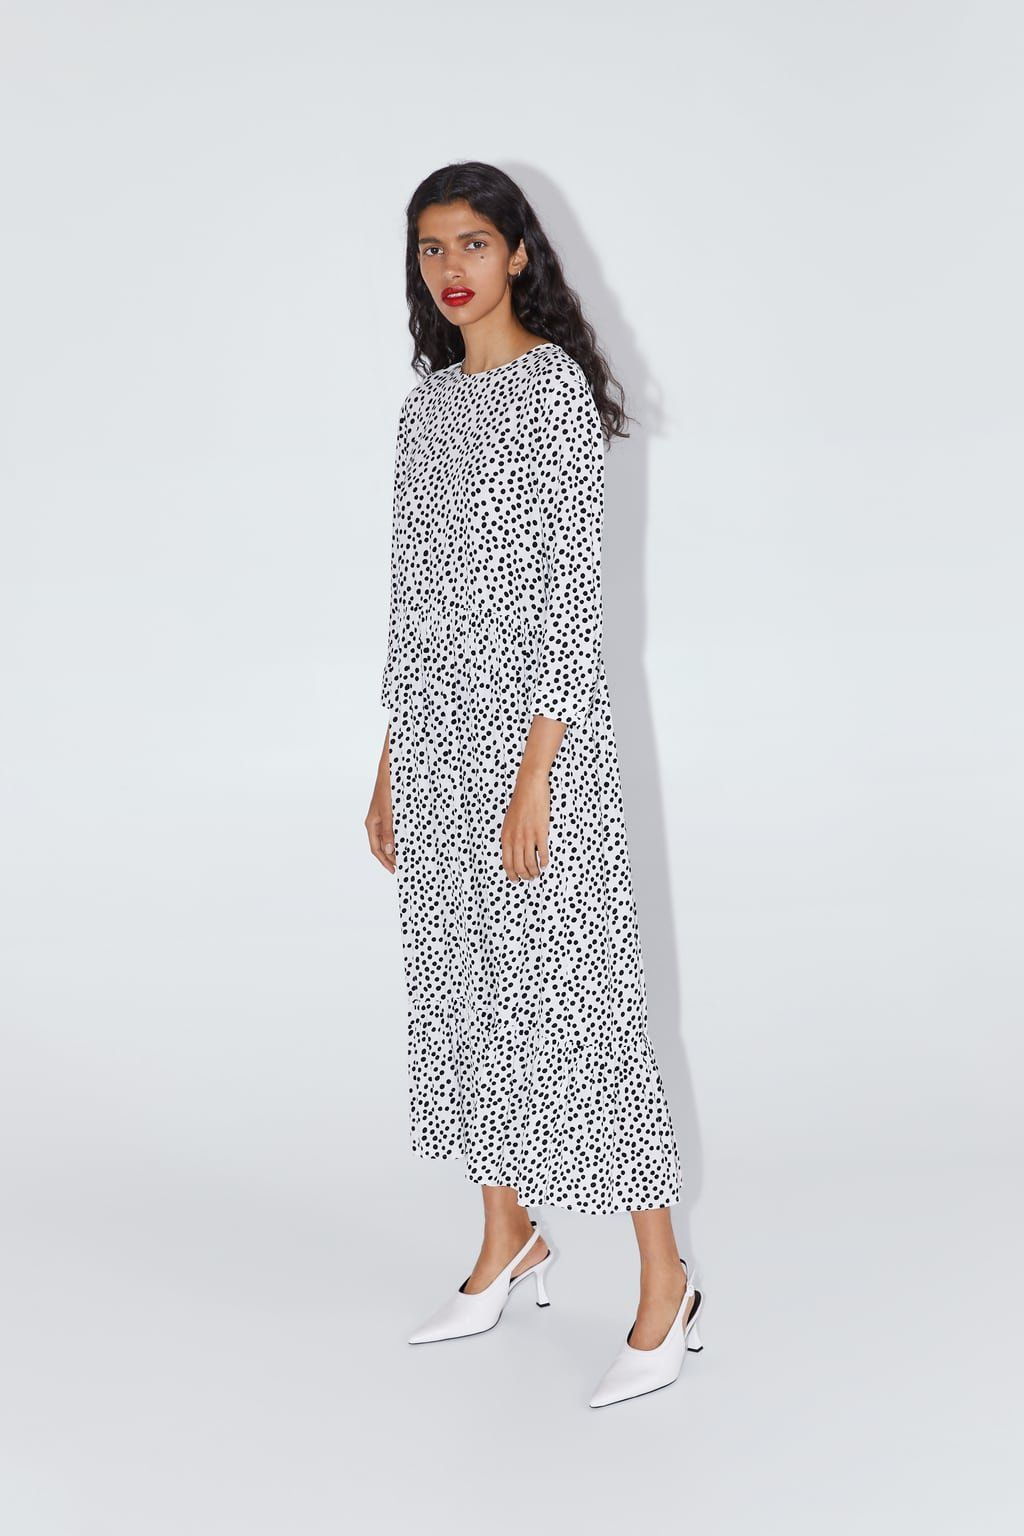 Picture of the white Zara dress